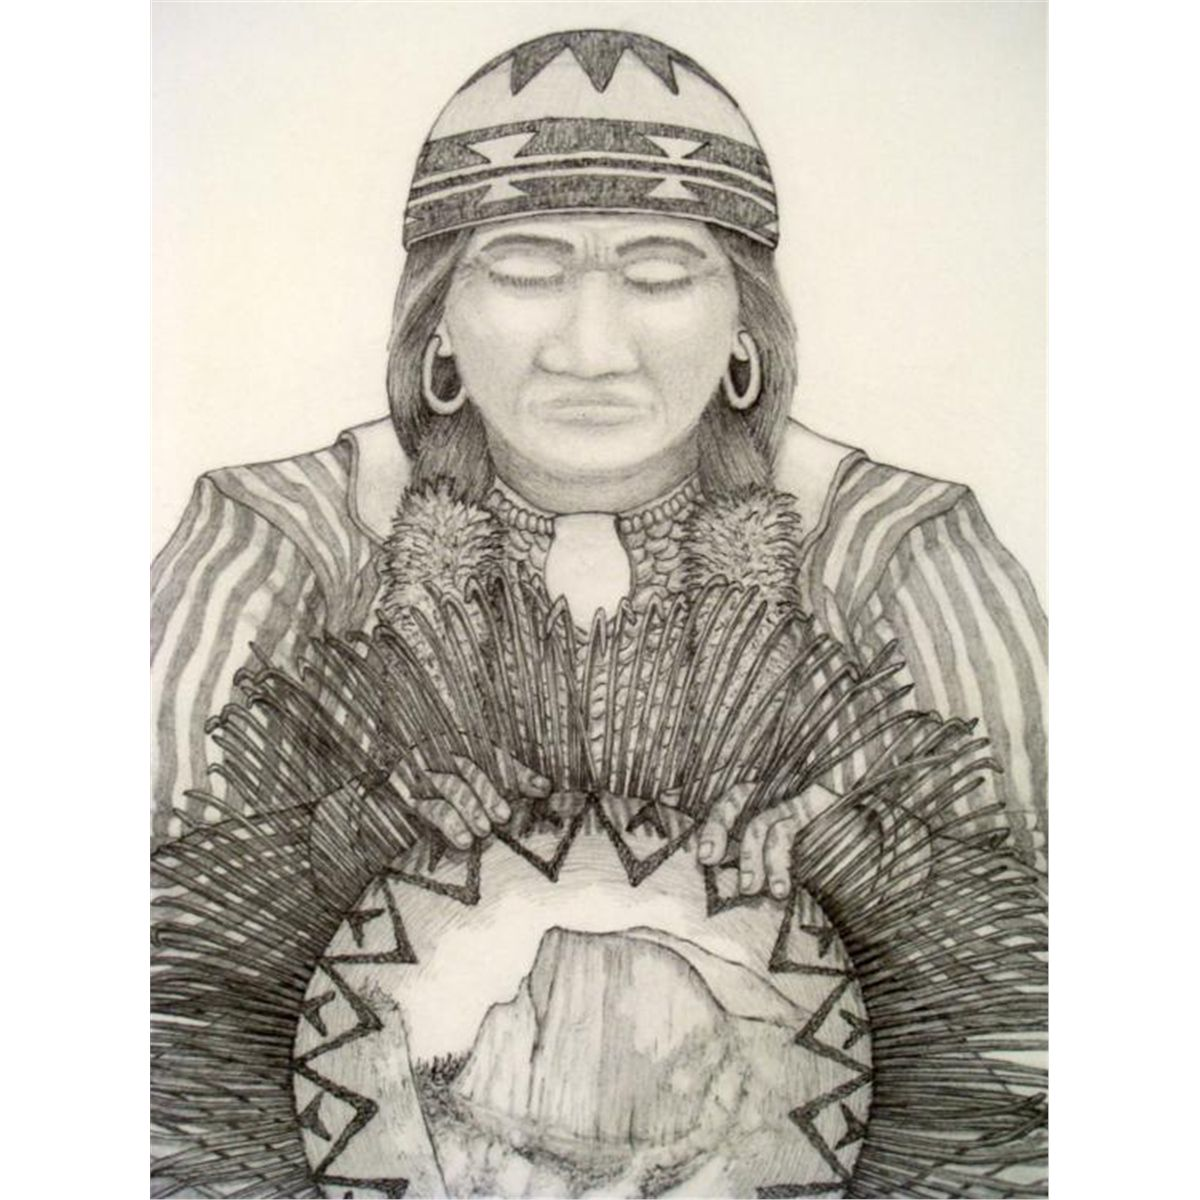 Native American Women Art Signed native american artNative American Women Artists